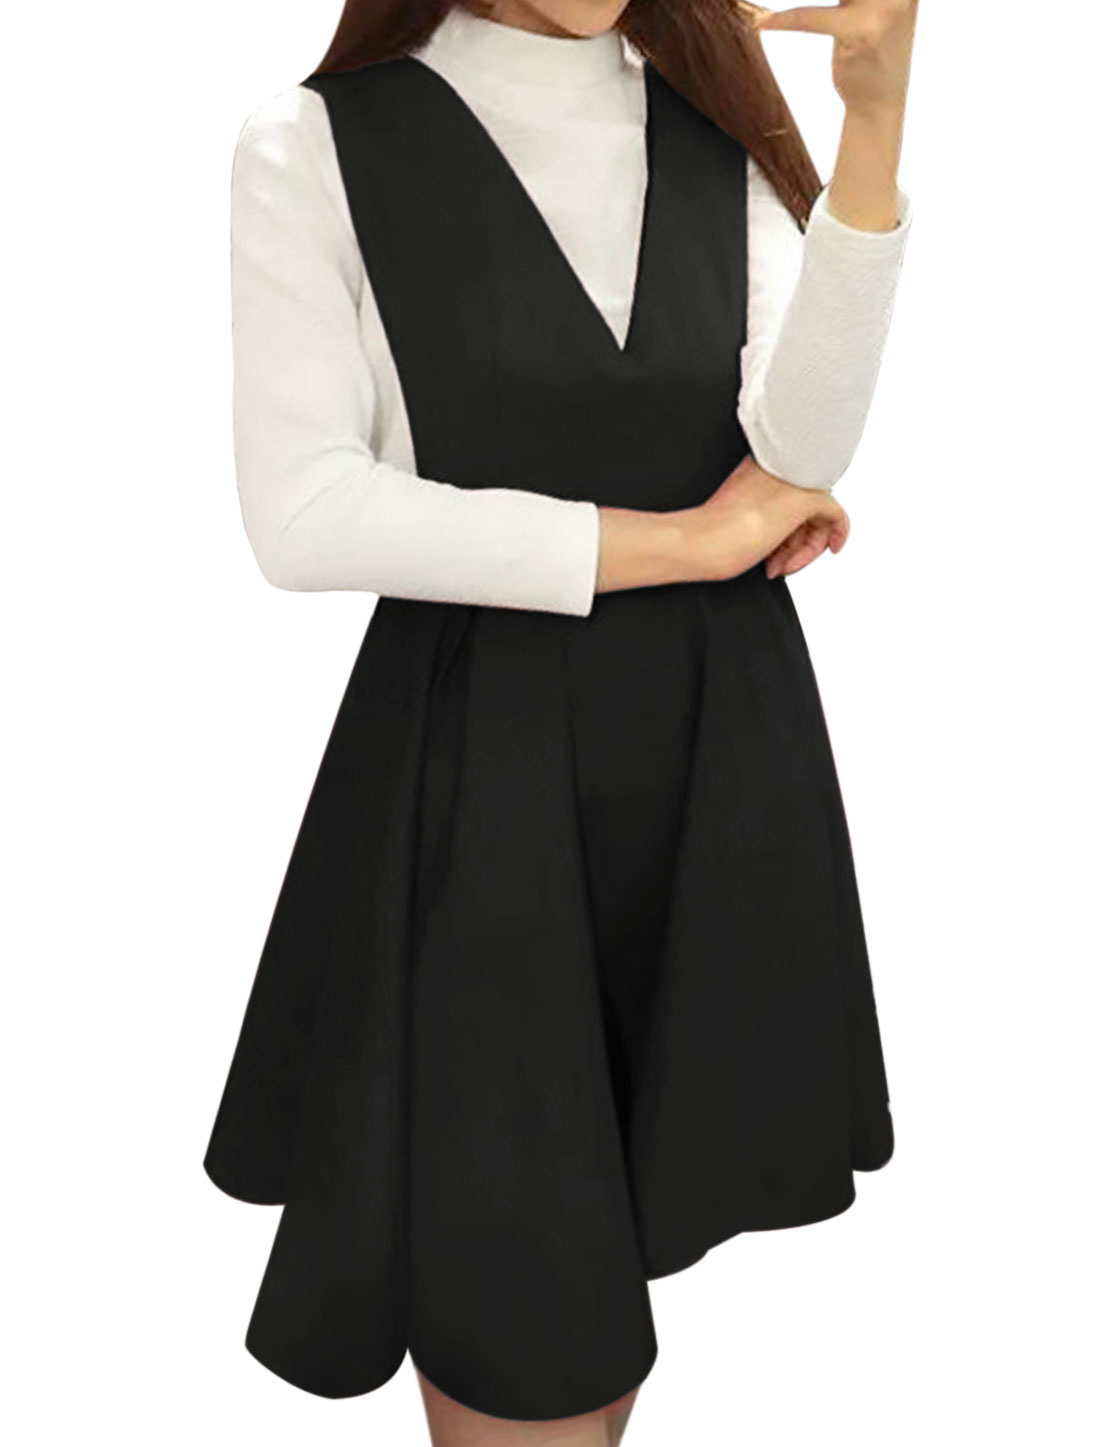 Lady Ribbed Top w Flared Pleated Suspender Dress Sets White Black XS